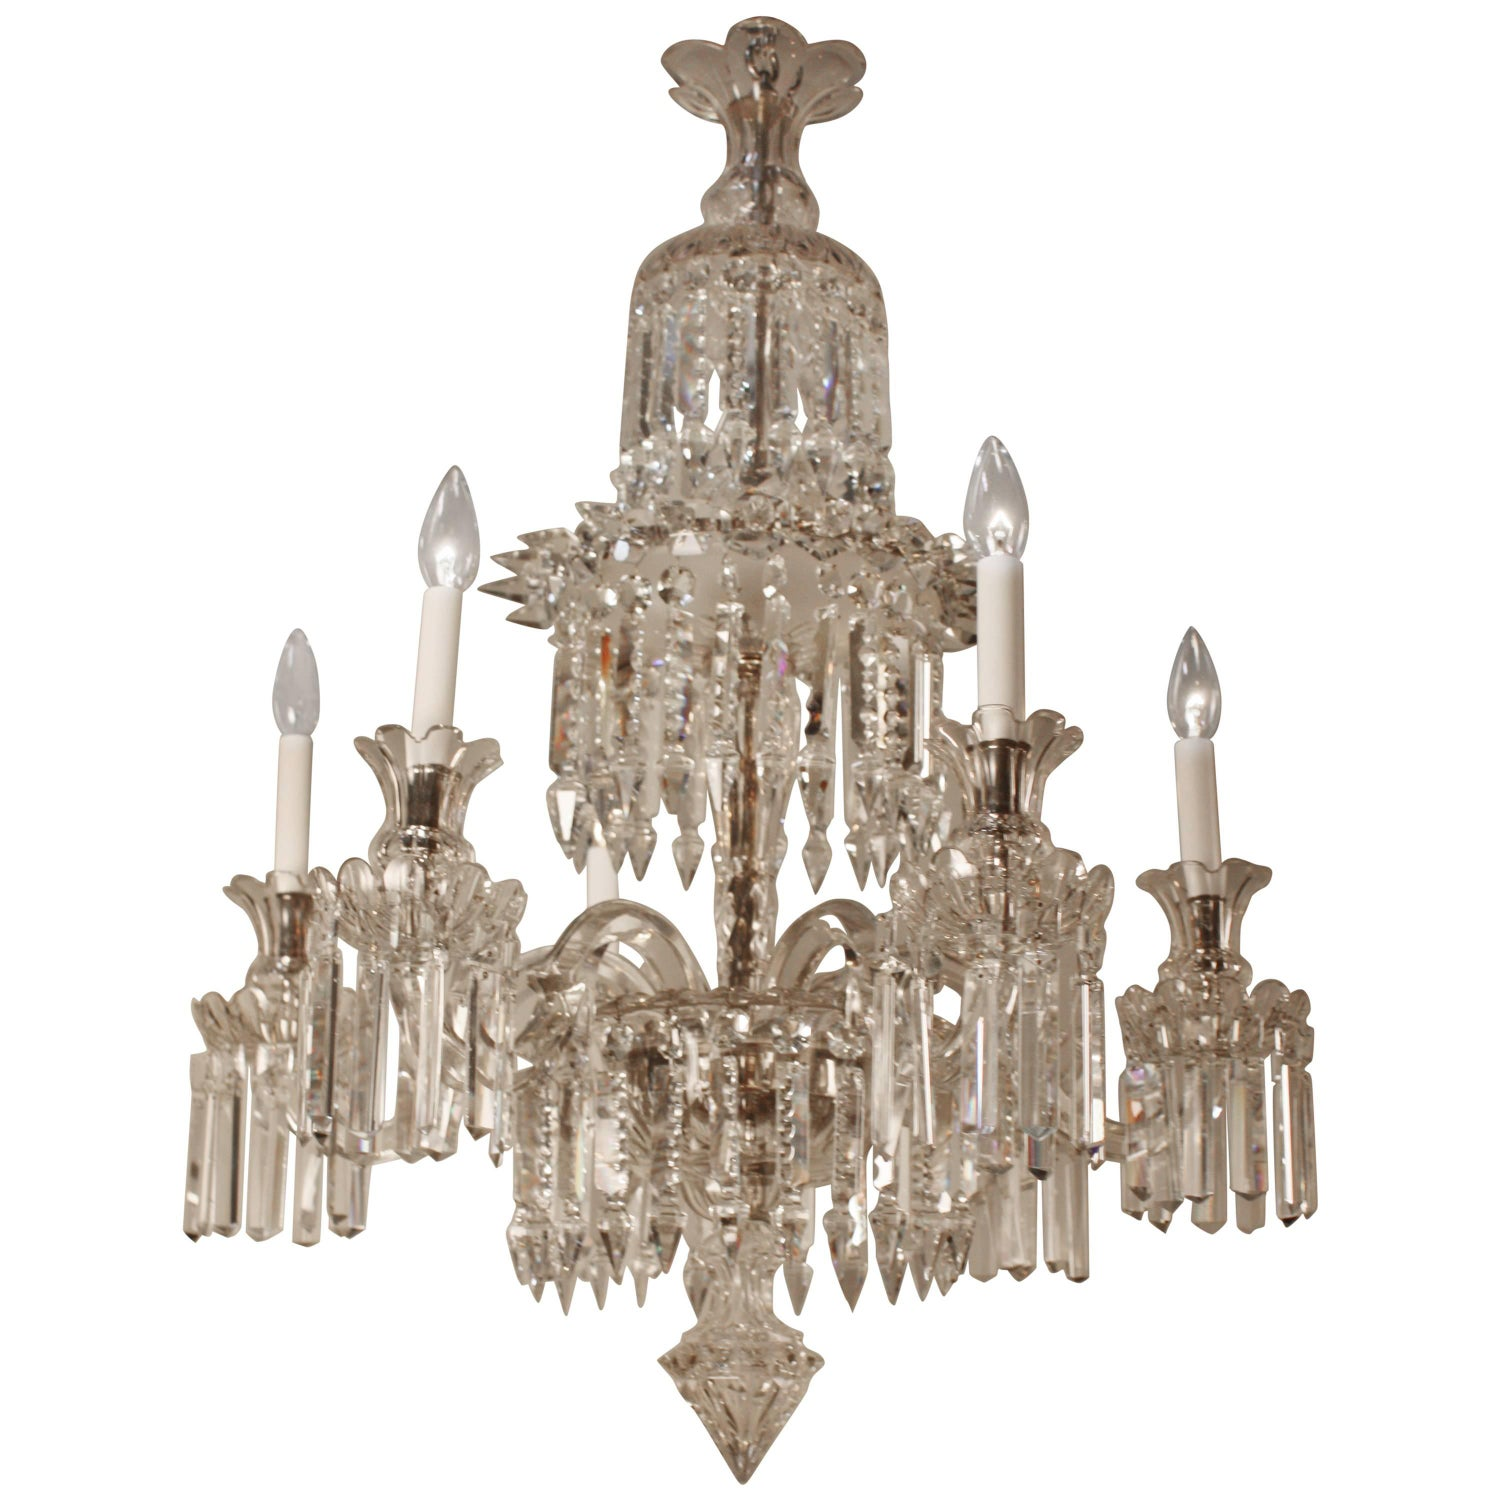 Baccarat Chandeliers and Pendants - 52 For Sale at 1stdibs